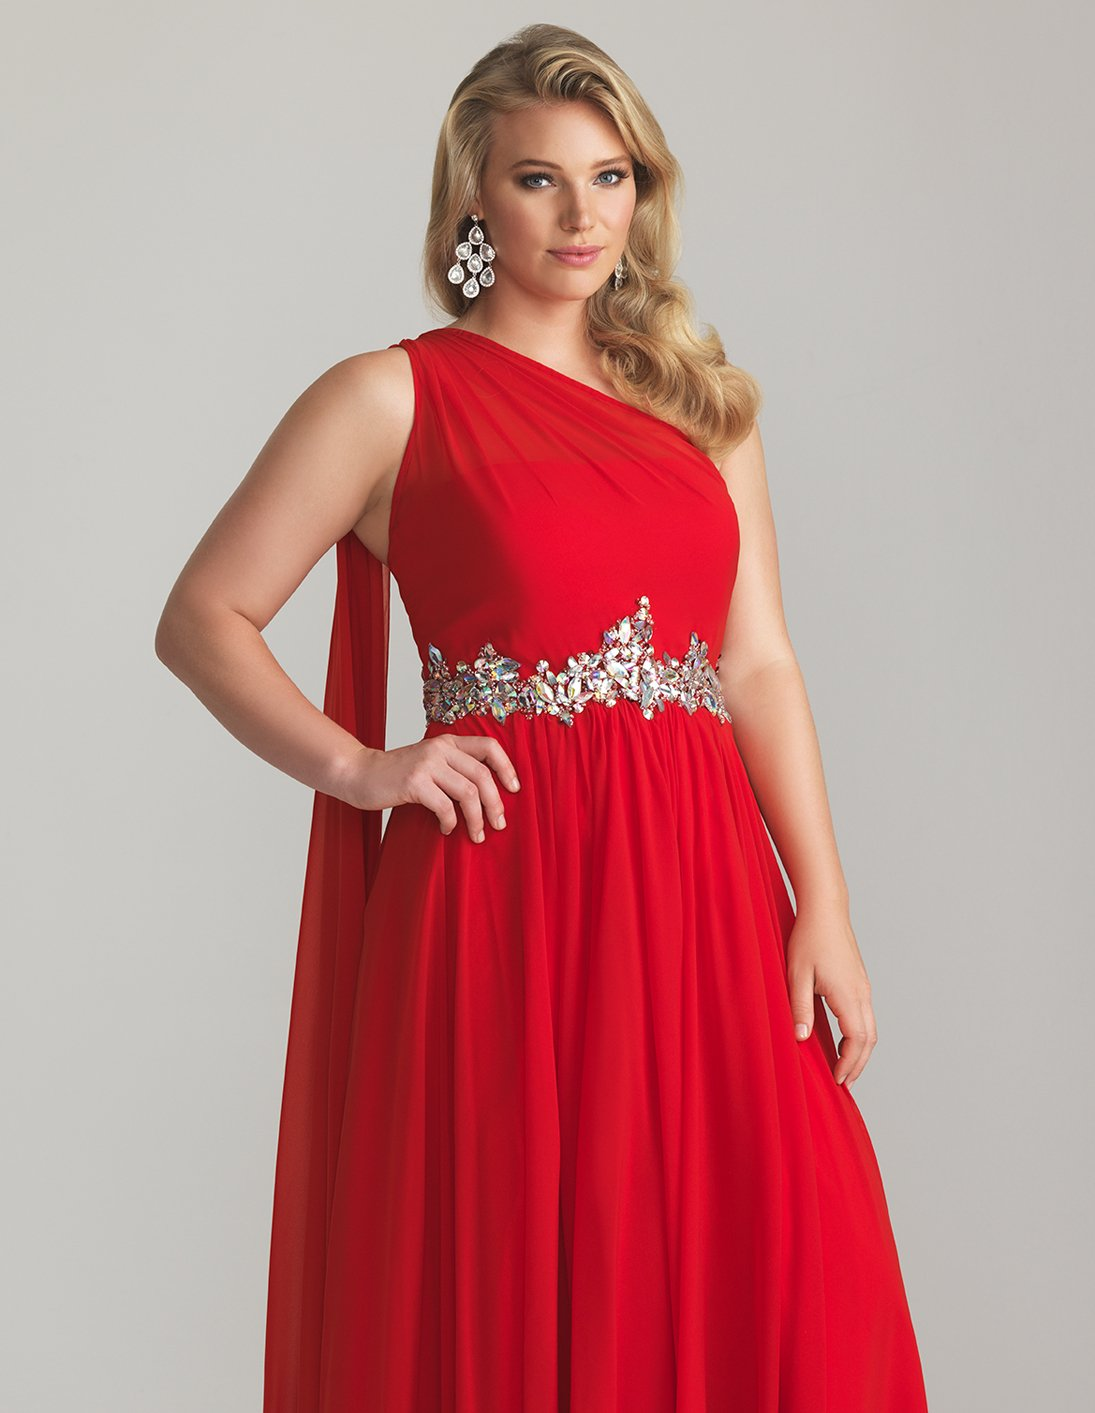 #2013-E29 x - Red Plus Size Evening Gowns, One Shoulder Dresses